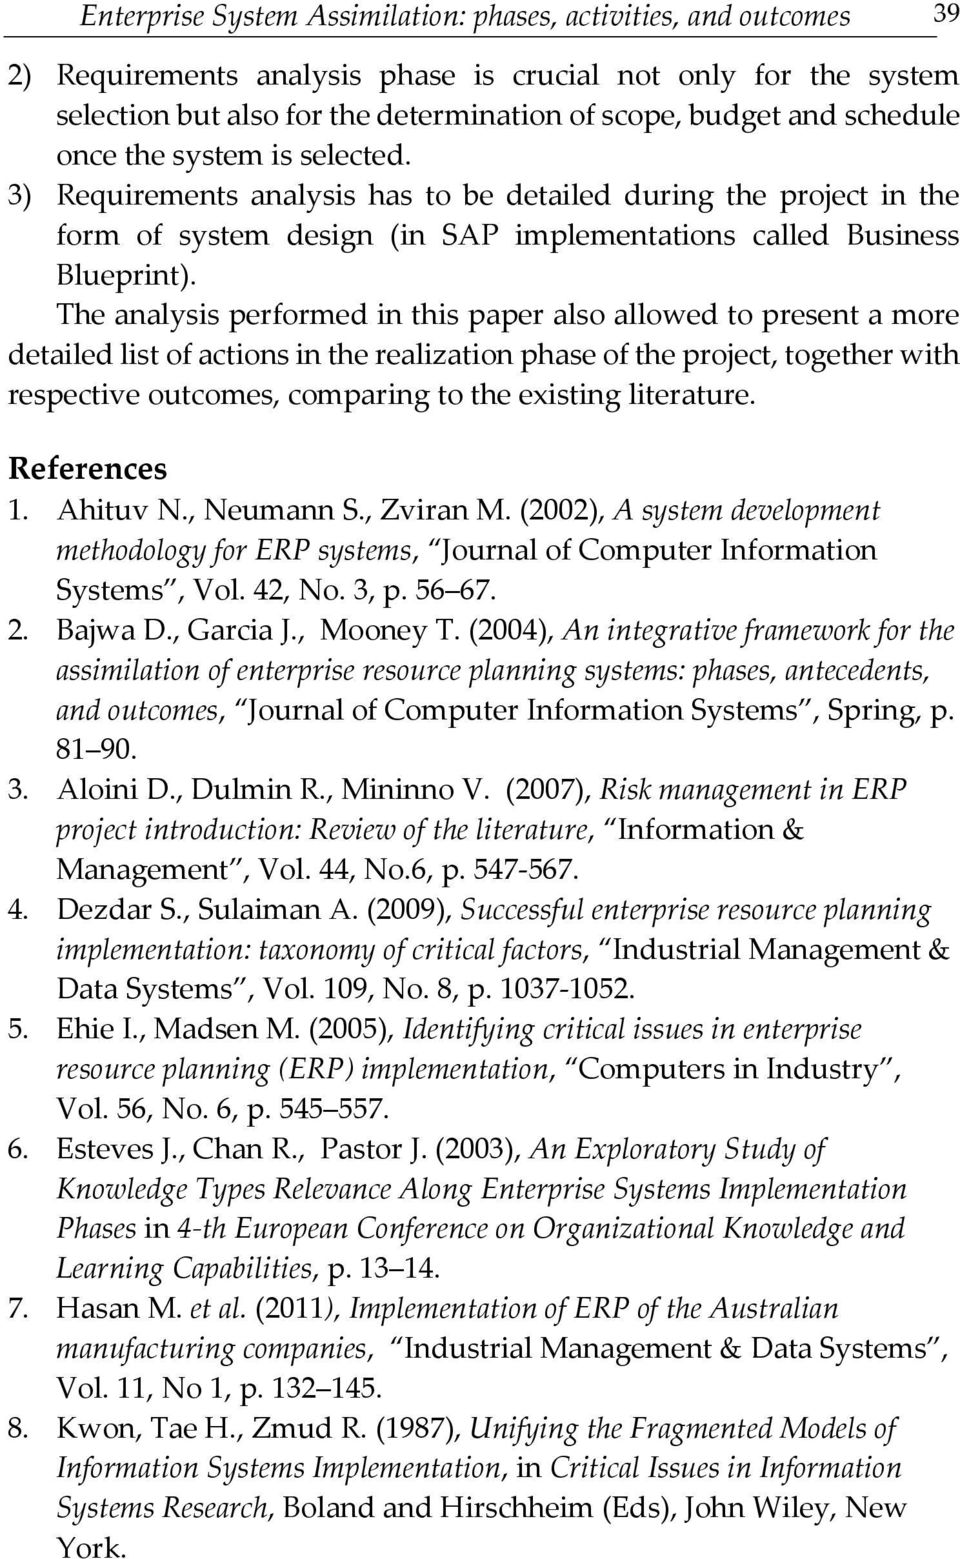 The analysis performed in this paper also allowed to present a more detailed list of actions in the realization phase of the project, together with respective outcomes, comparing to the existing